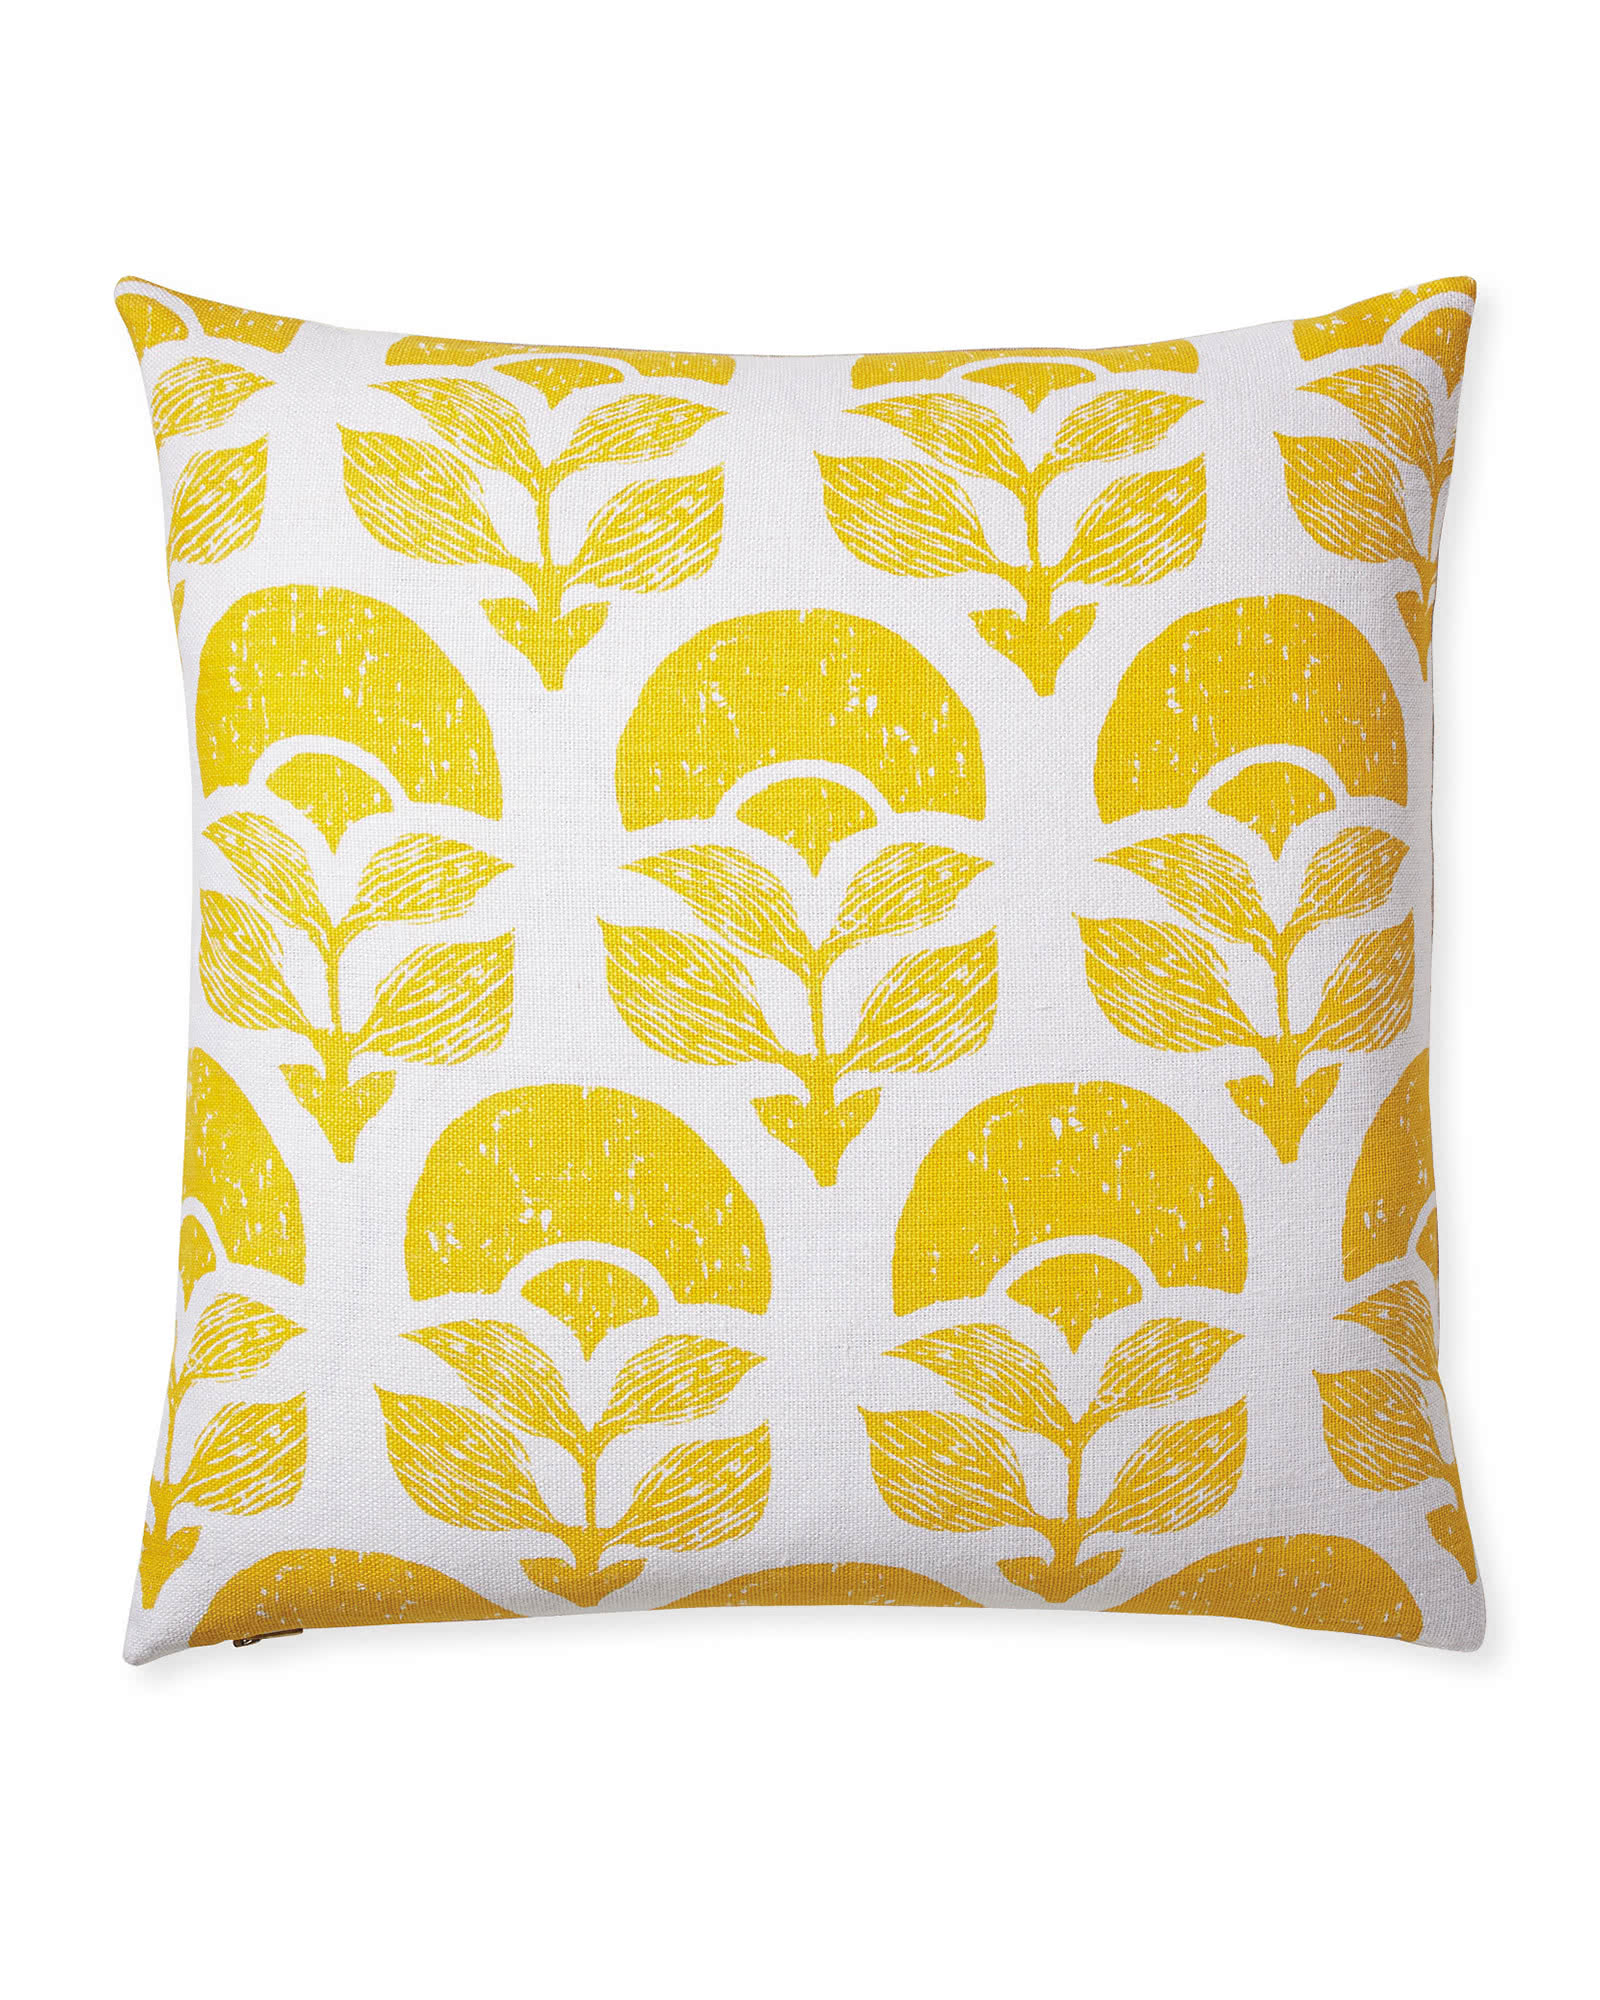 Larkspur Printed Pillow Cover, Canary